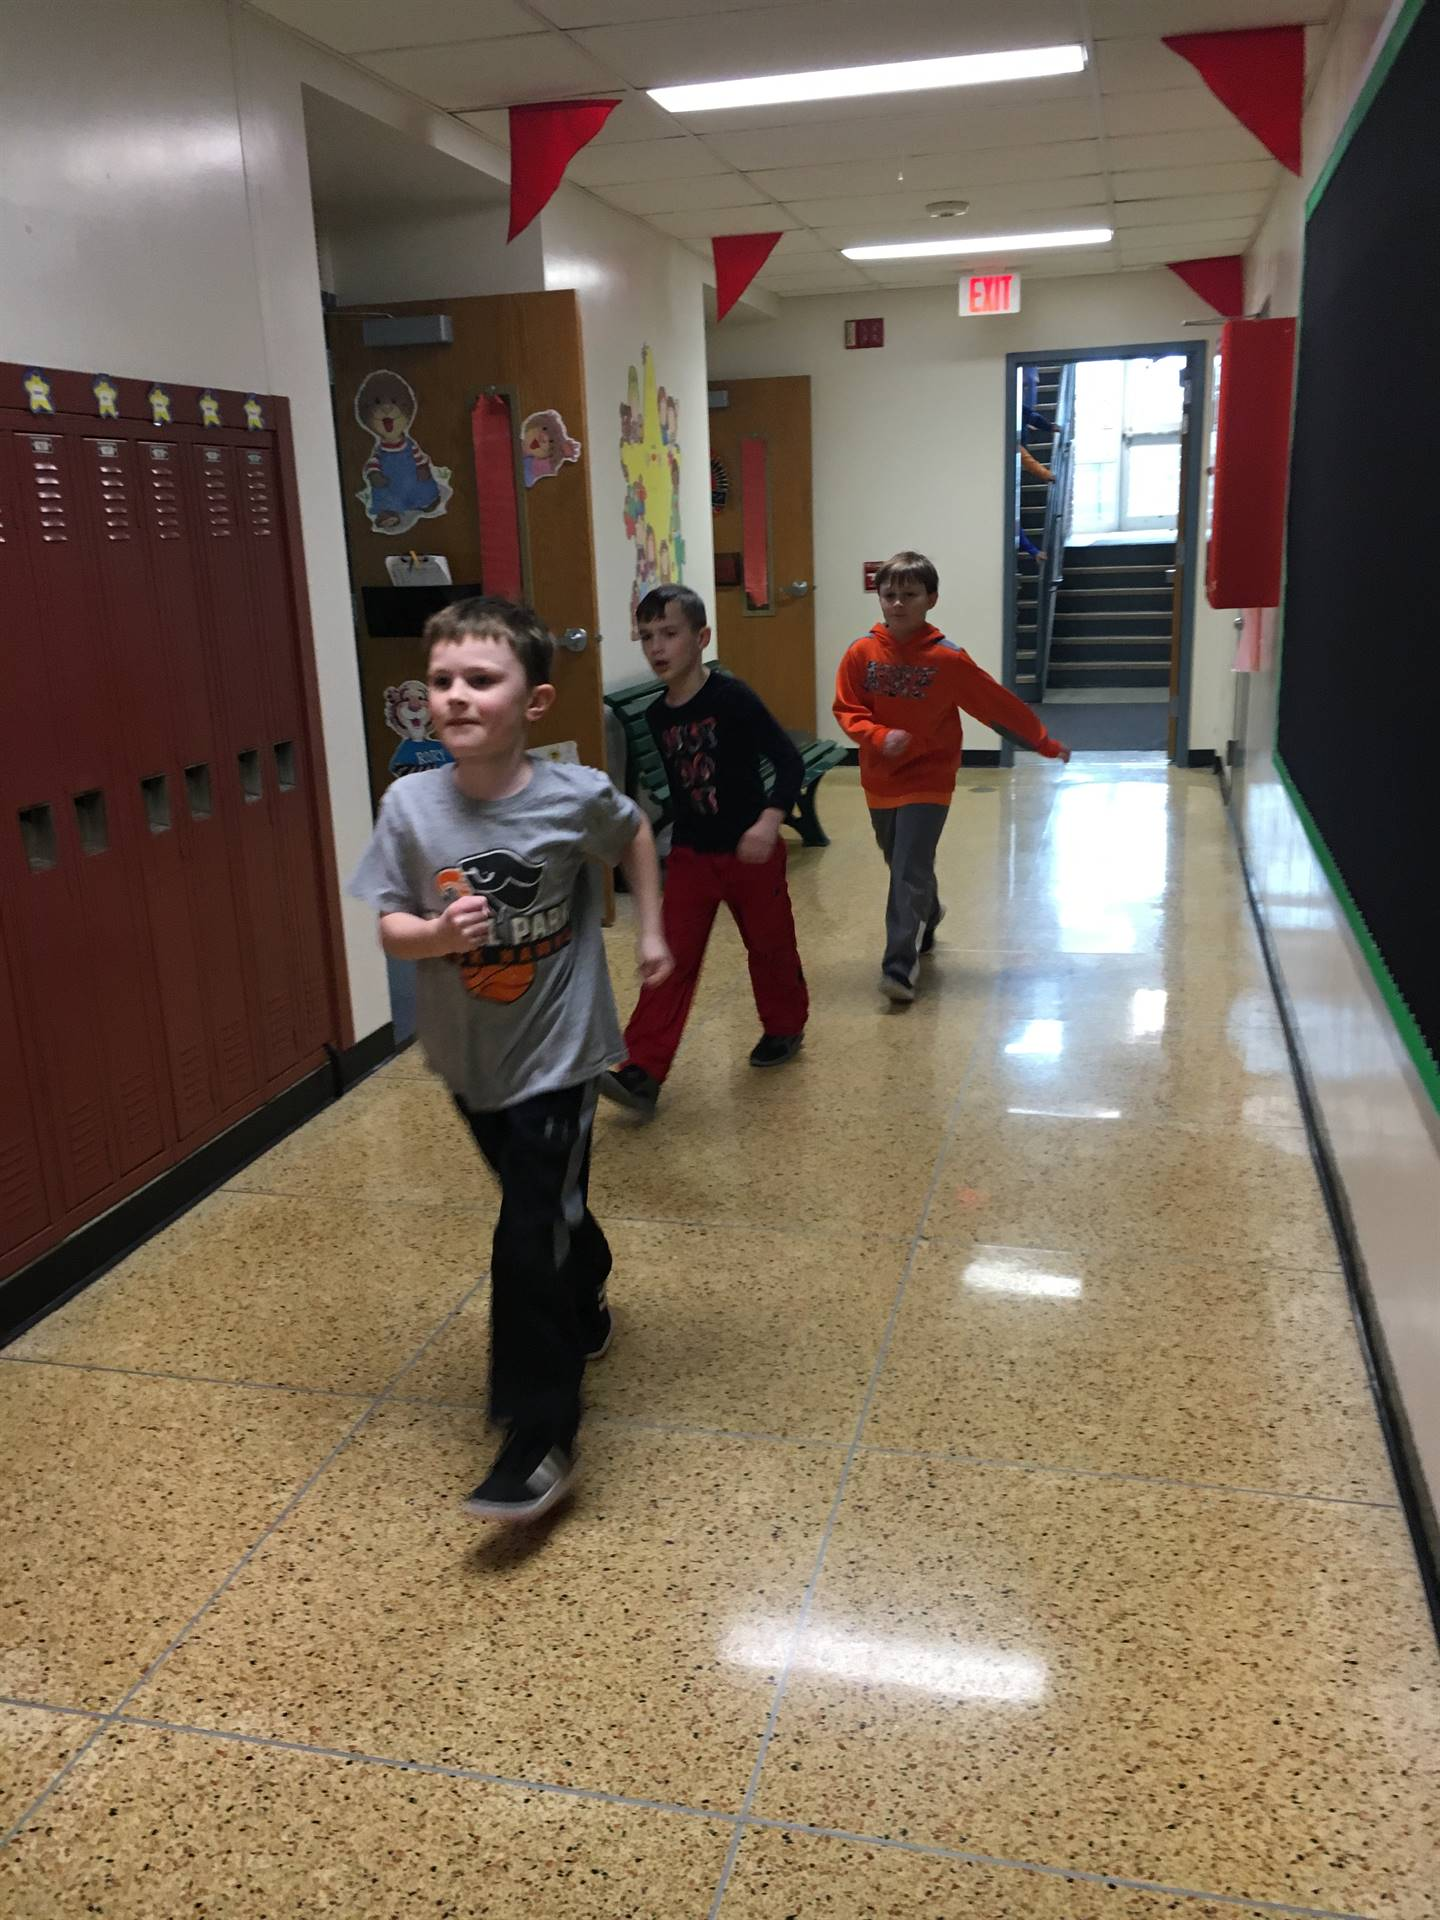 Group of students walking inside